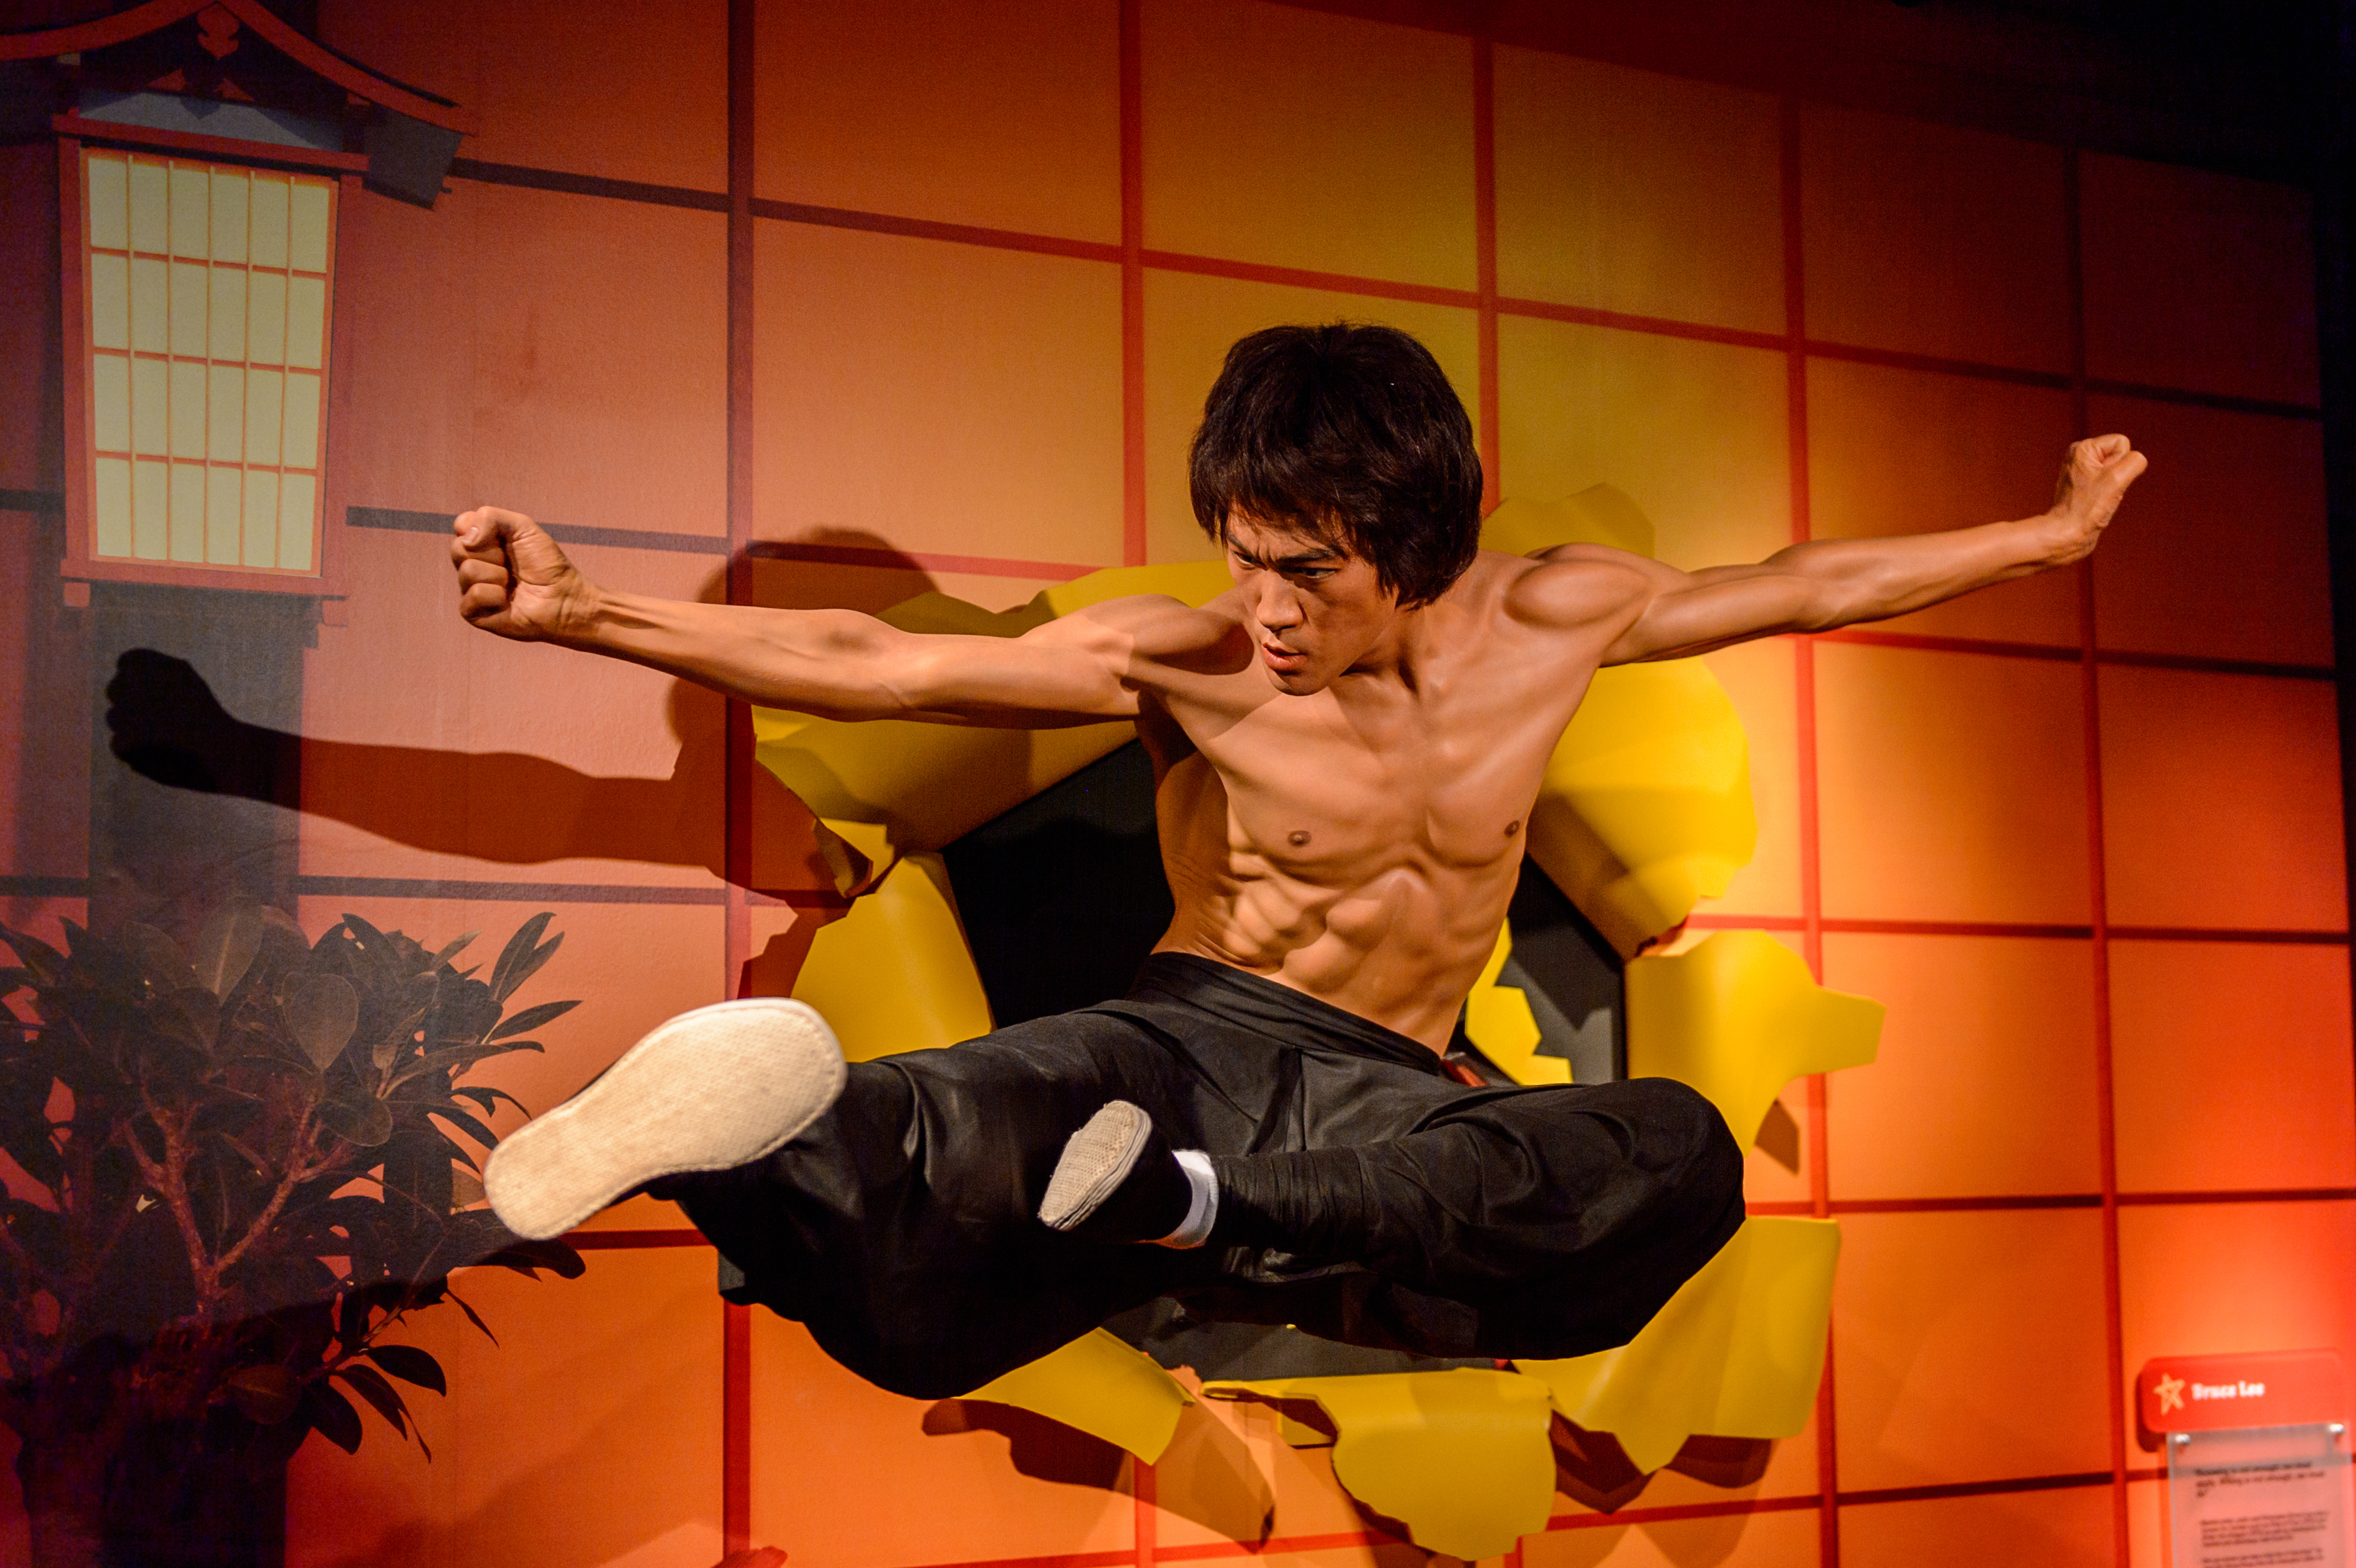 Pictured is Bruce Lee, who made nunchucks famous. SHUTTERSTOCK/ Anton_Ivanov